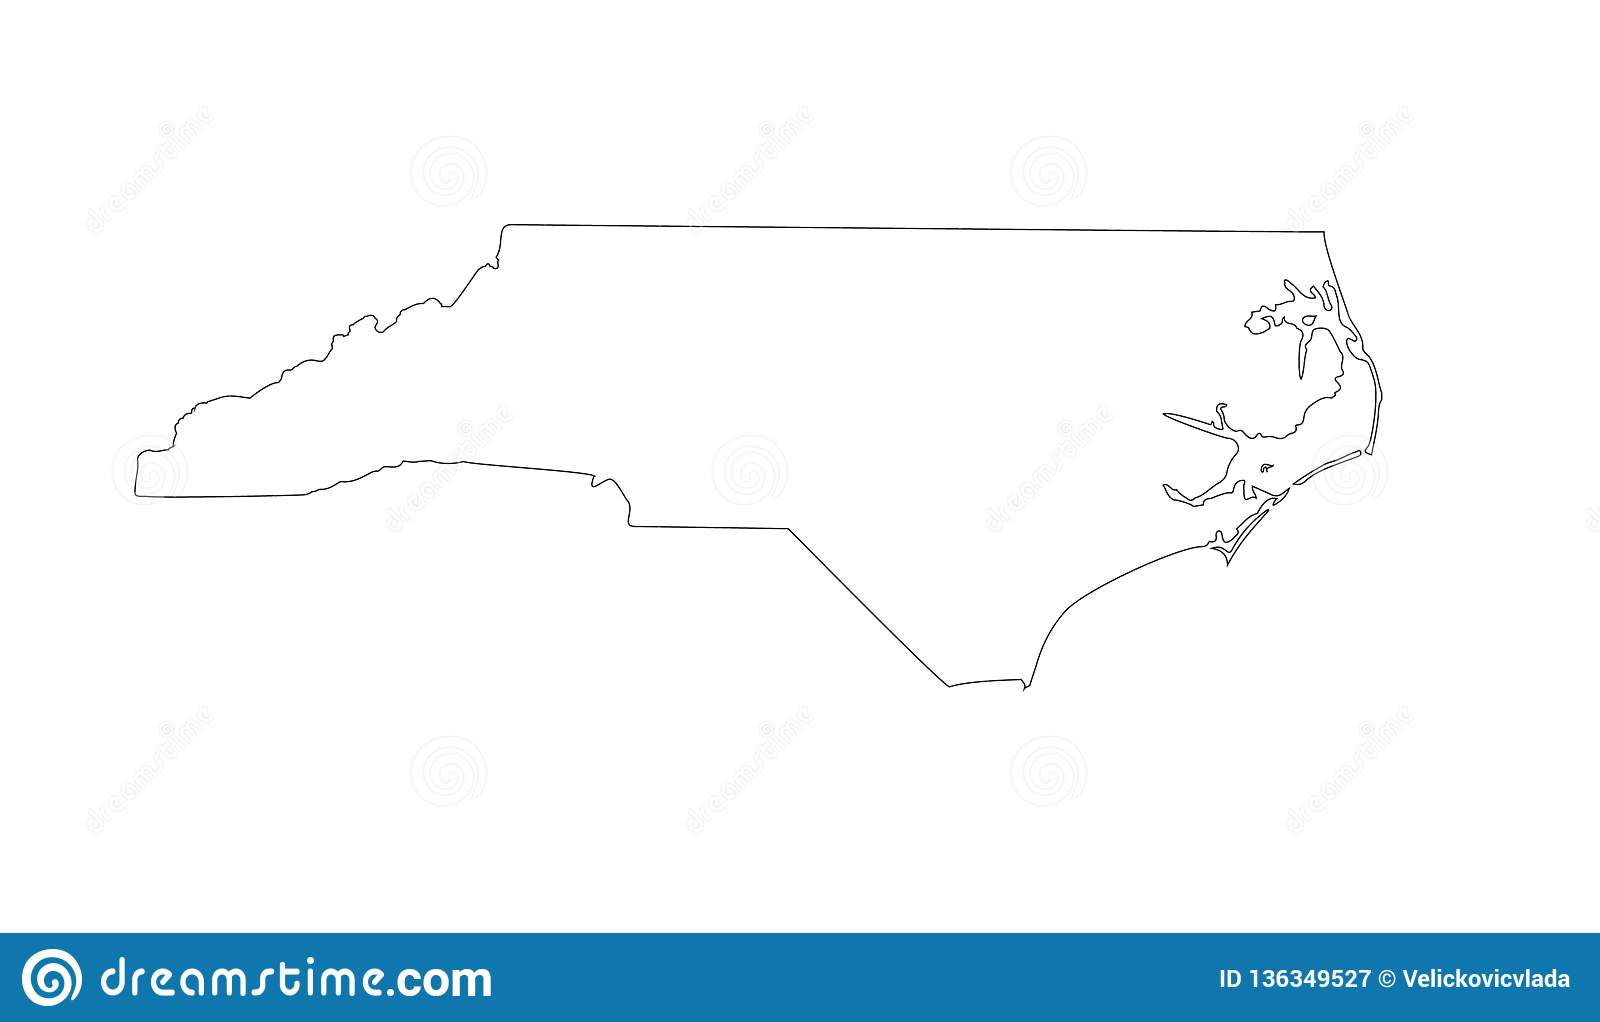 North Carolina Map - State In The Southeastern Region Of The United ...